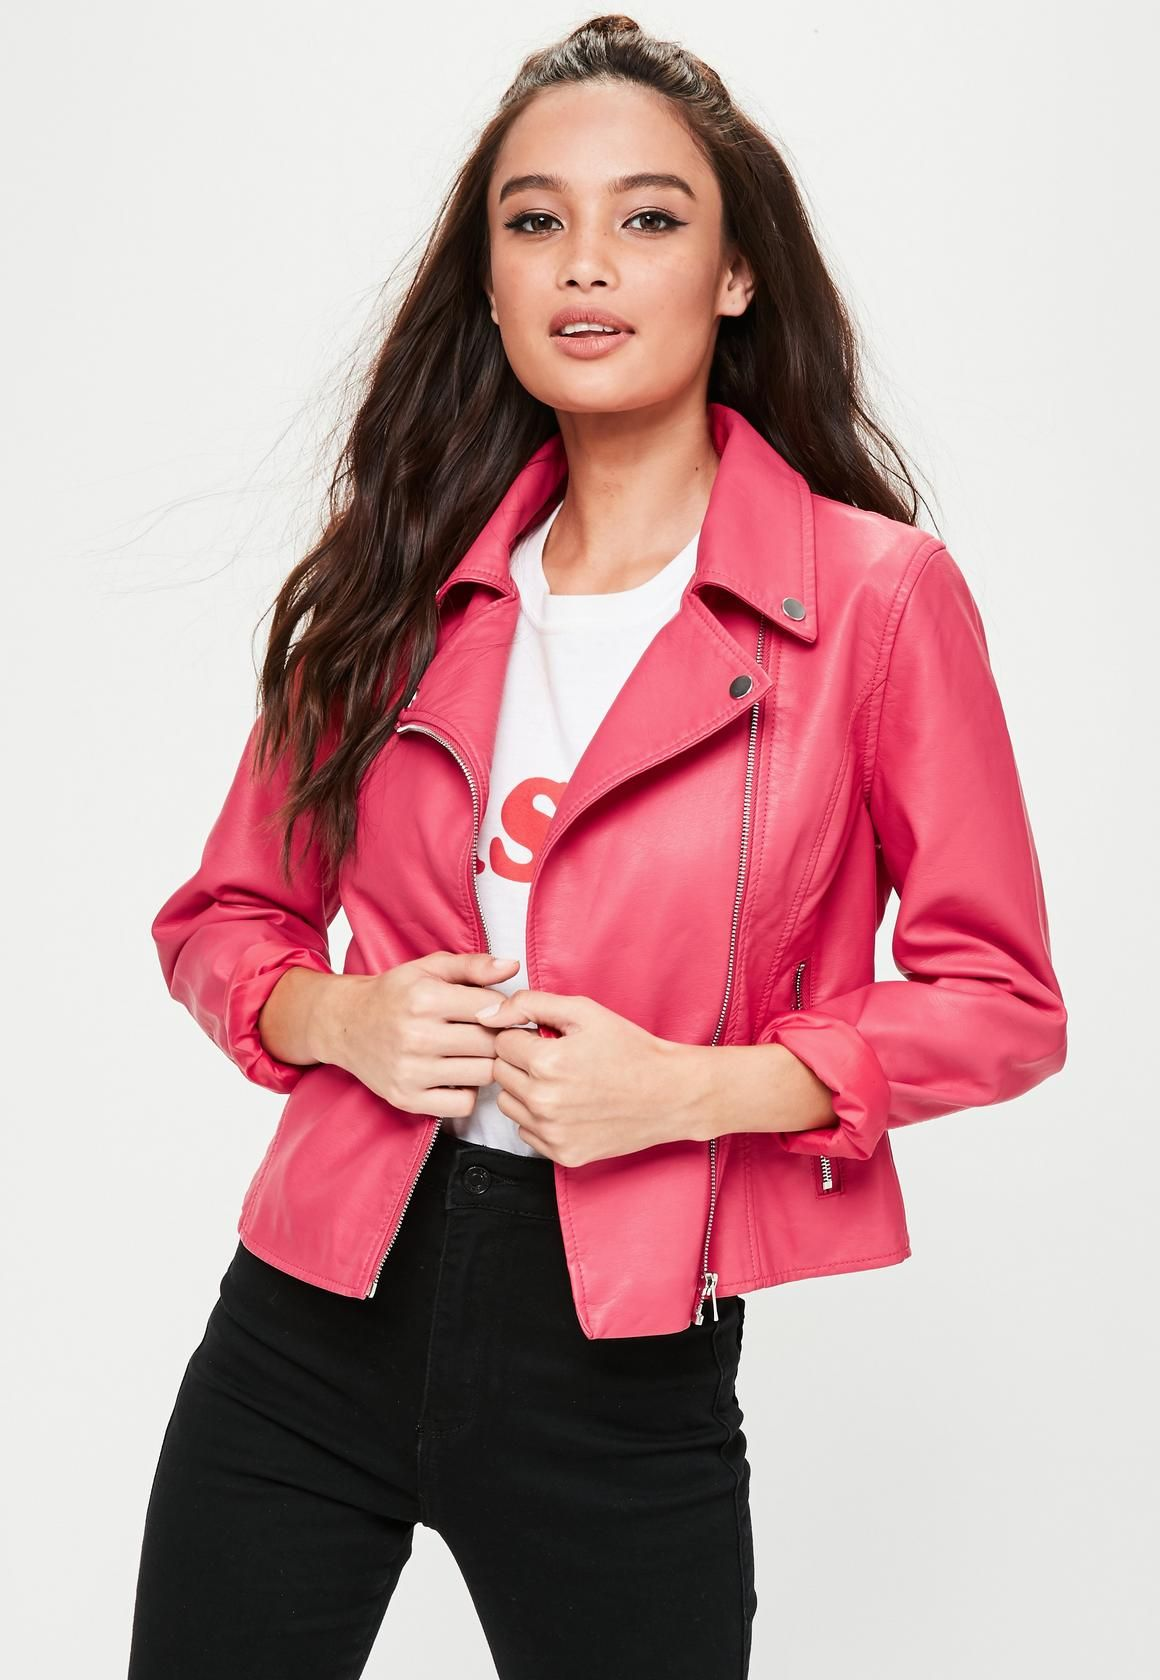 6acf1051a1a7 Pink biker jacket featuring PU fabric, long sleeves and two front pockets.